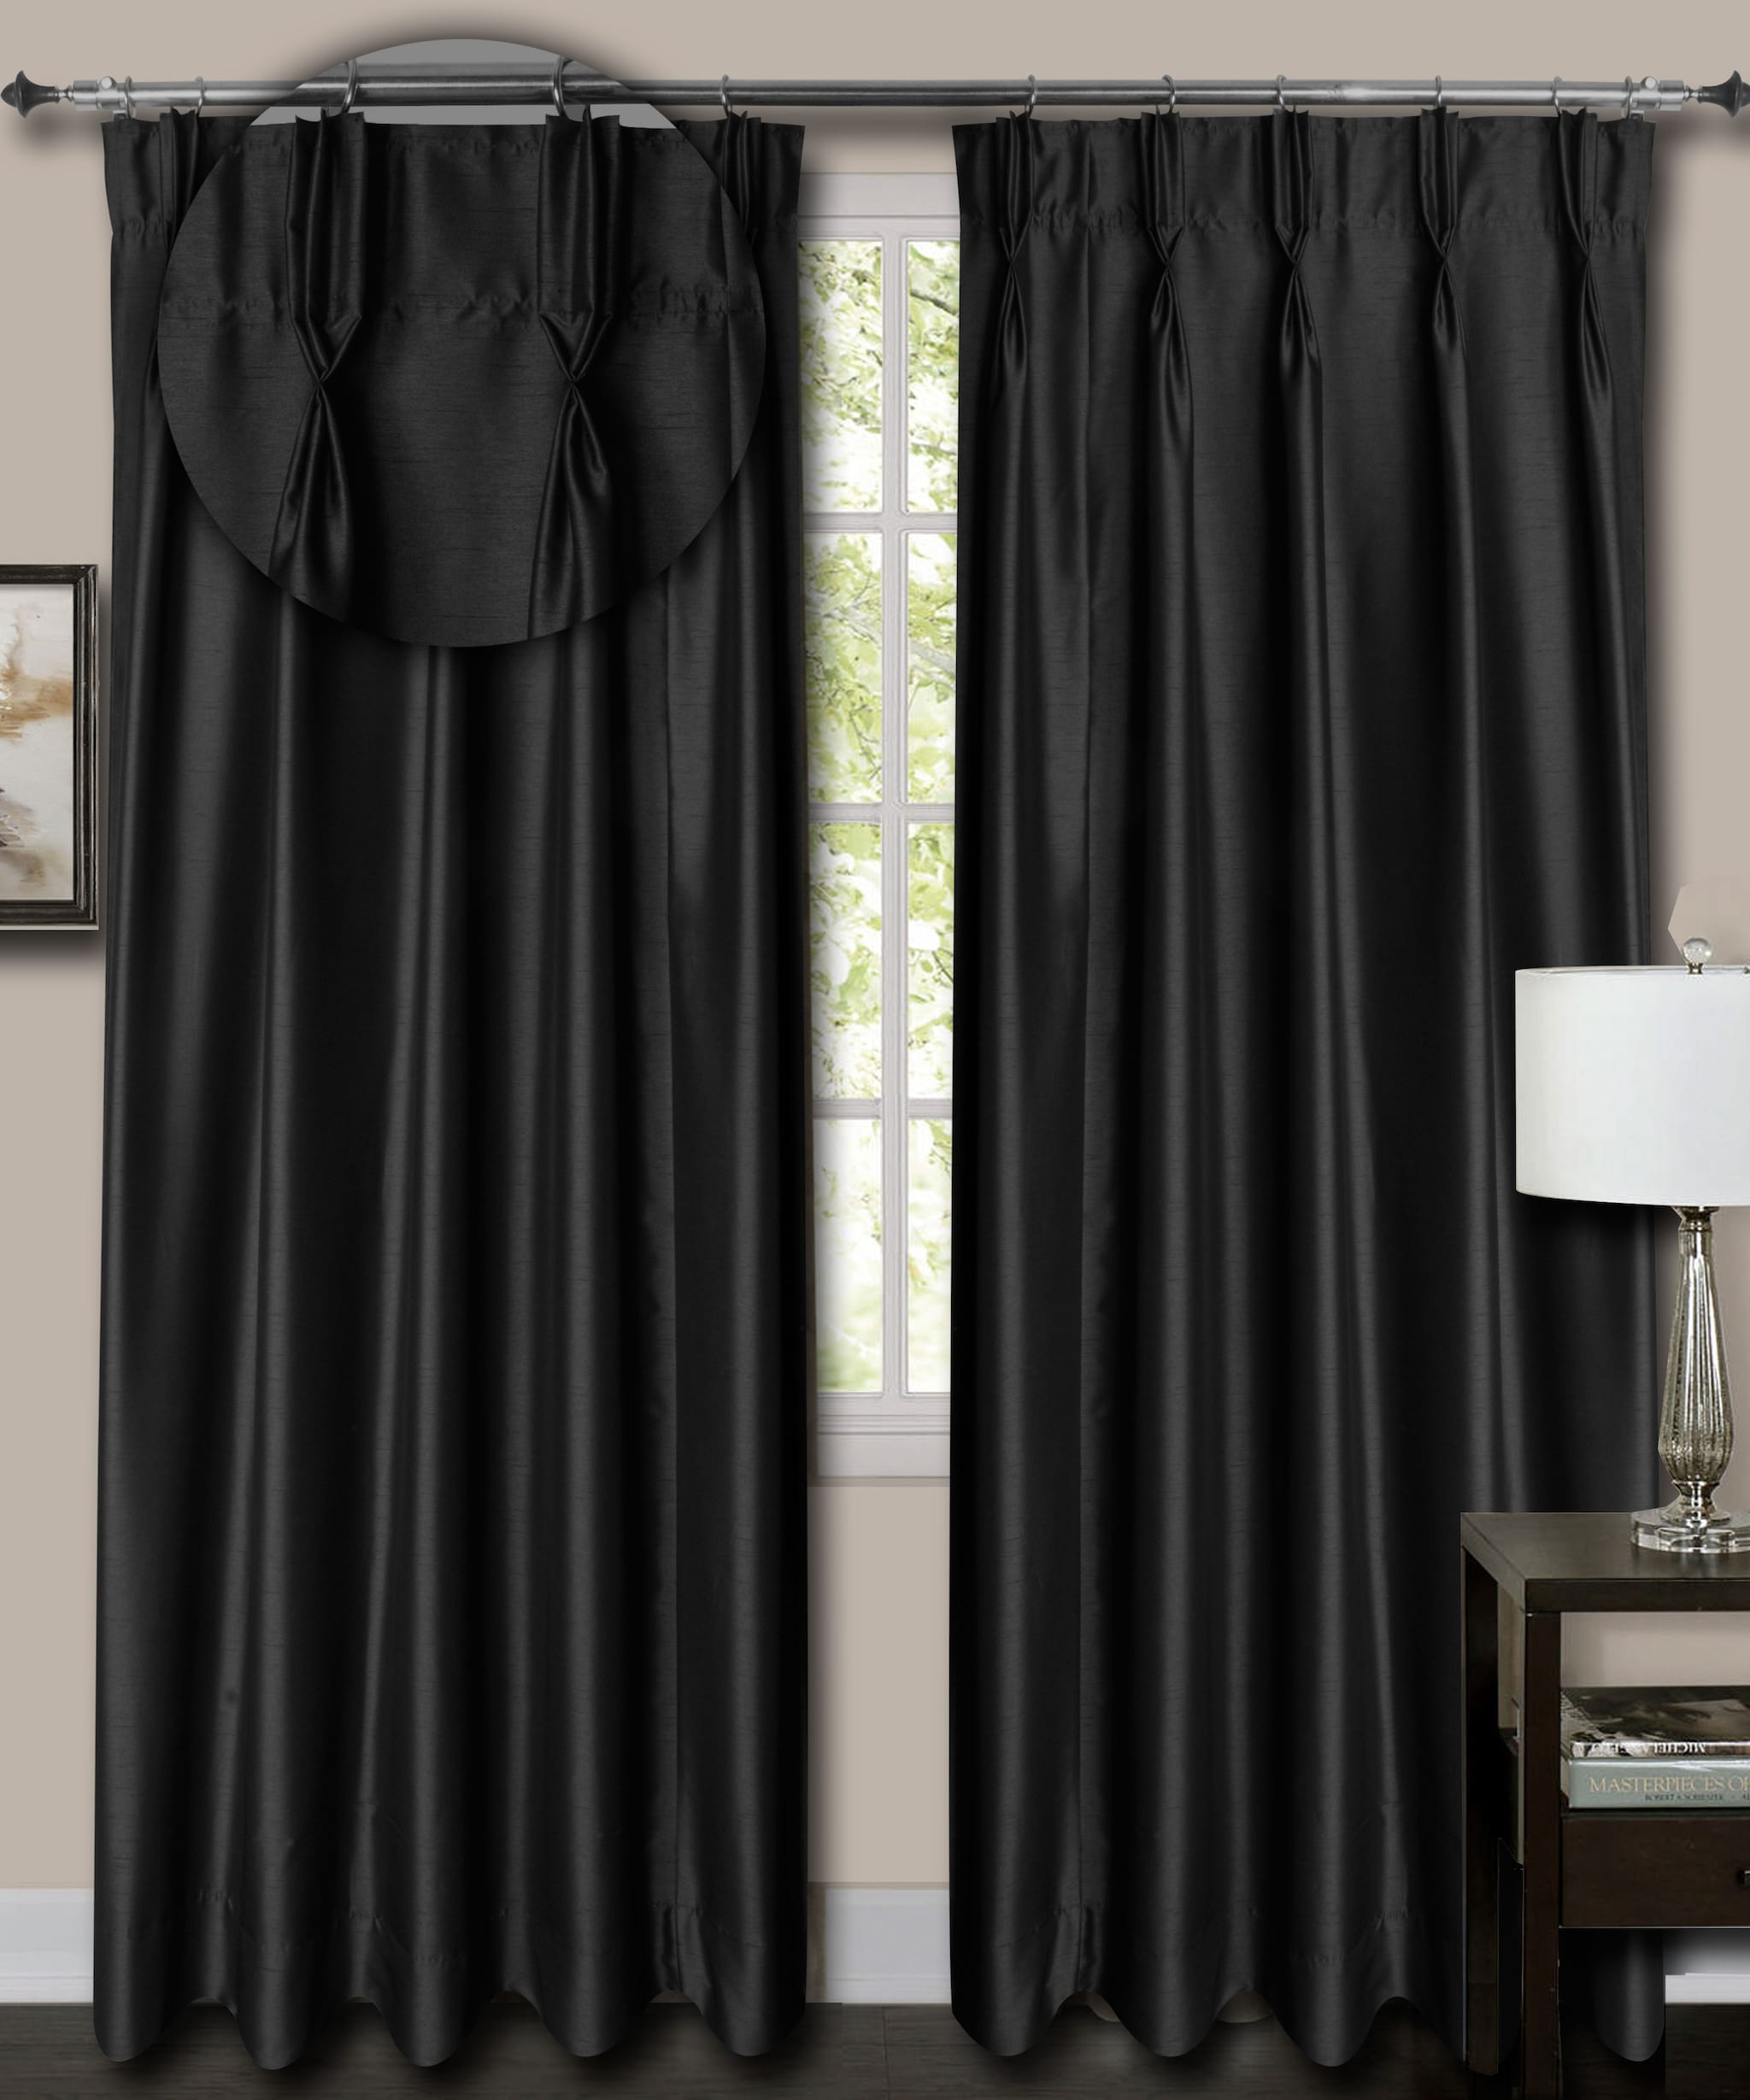 """French Pleat Top Black Faux Silk Dupioni Curtains. (39"""" Wide,11 Feet Long,Blackout Lining)"""